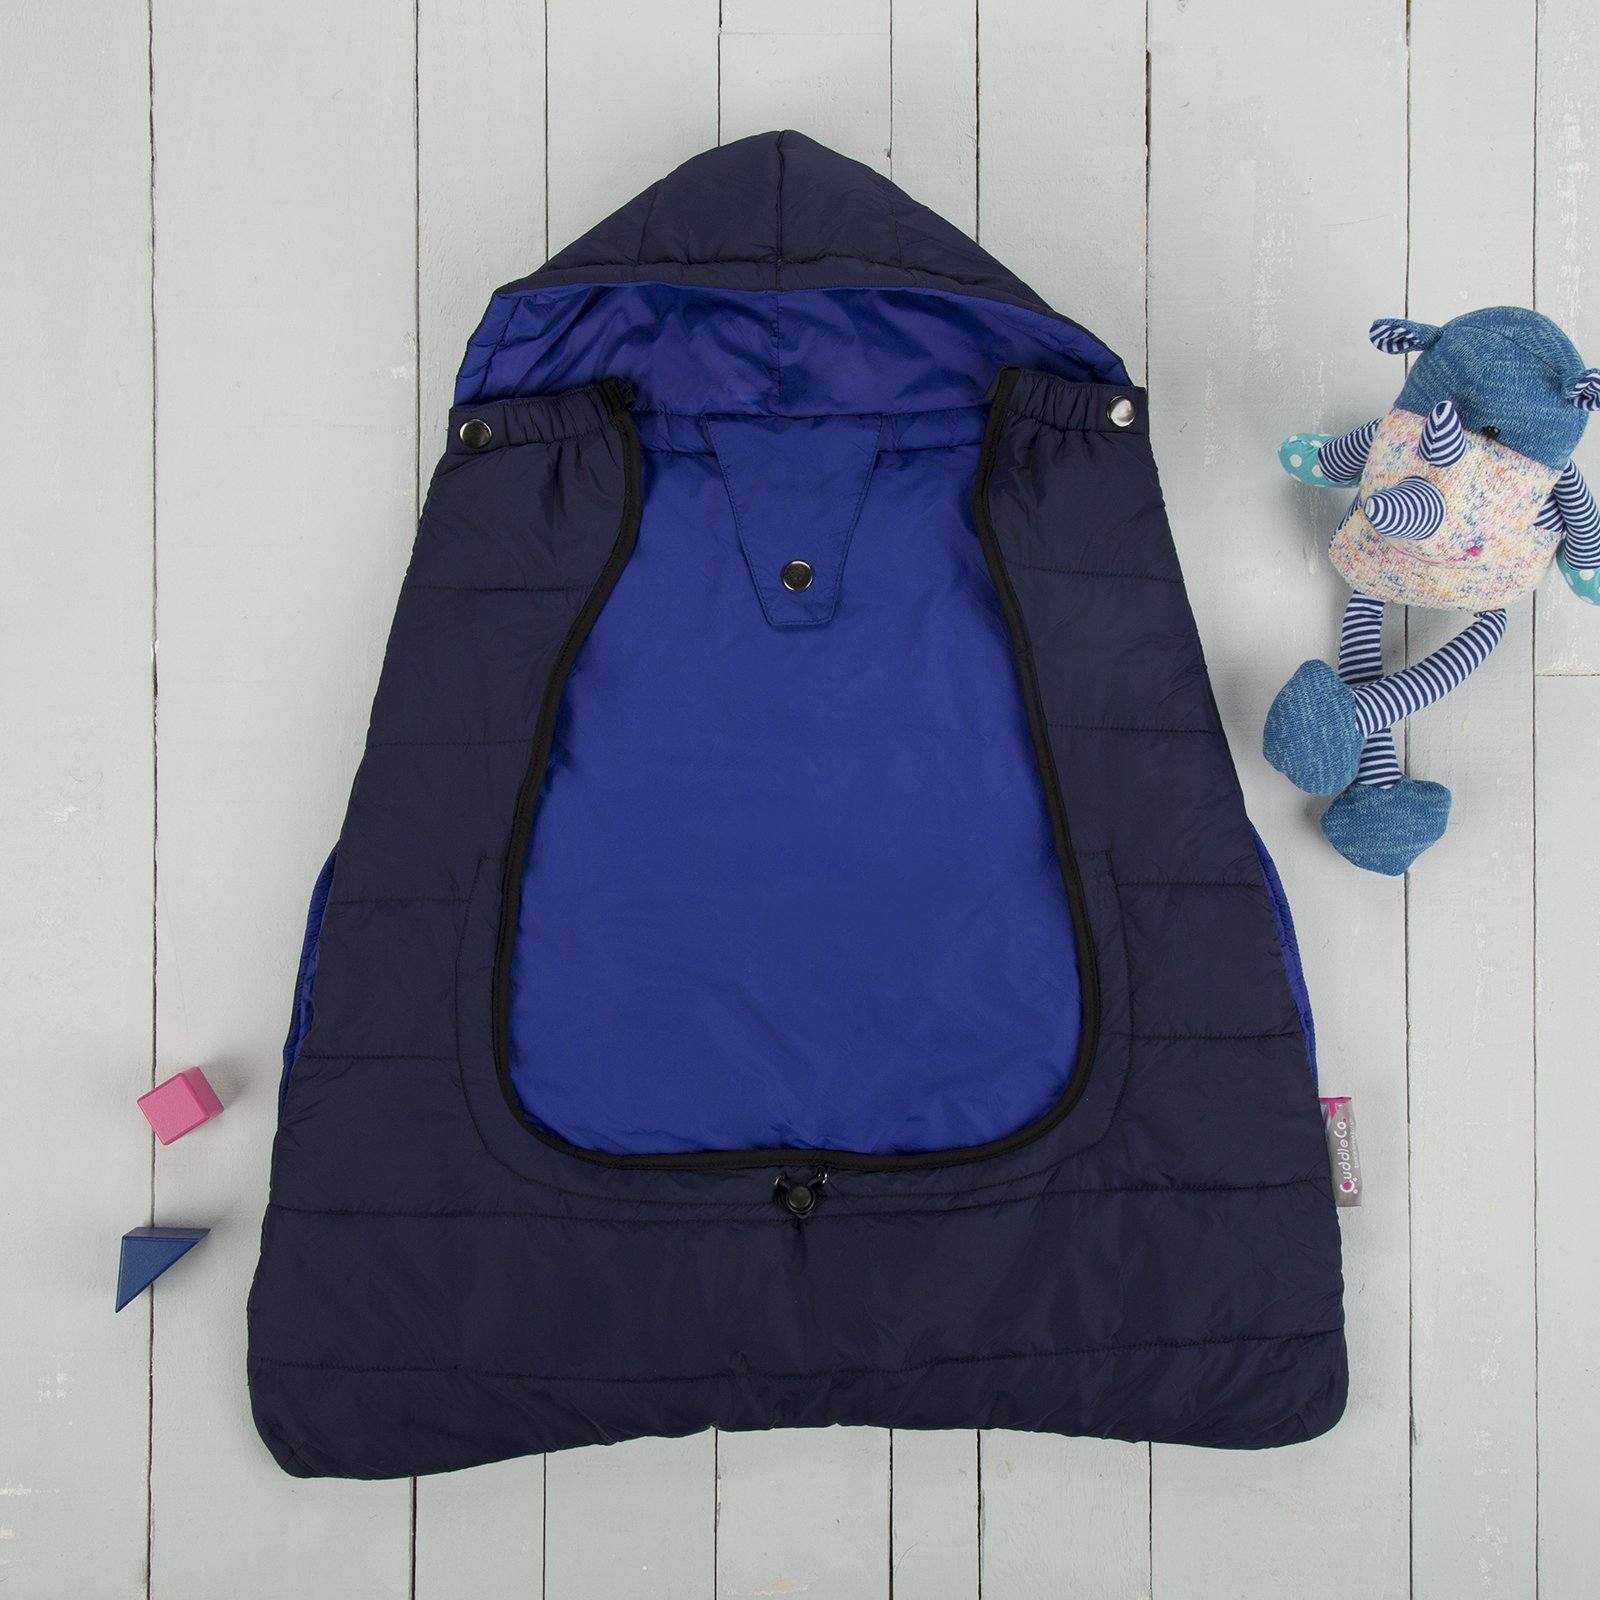 Comfi-Cape 2in1 Carrier Cape and Stroller Liner - Twilight On The Go cuddleco